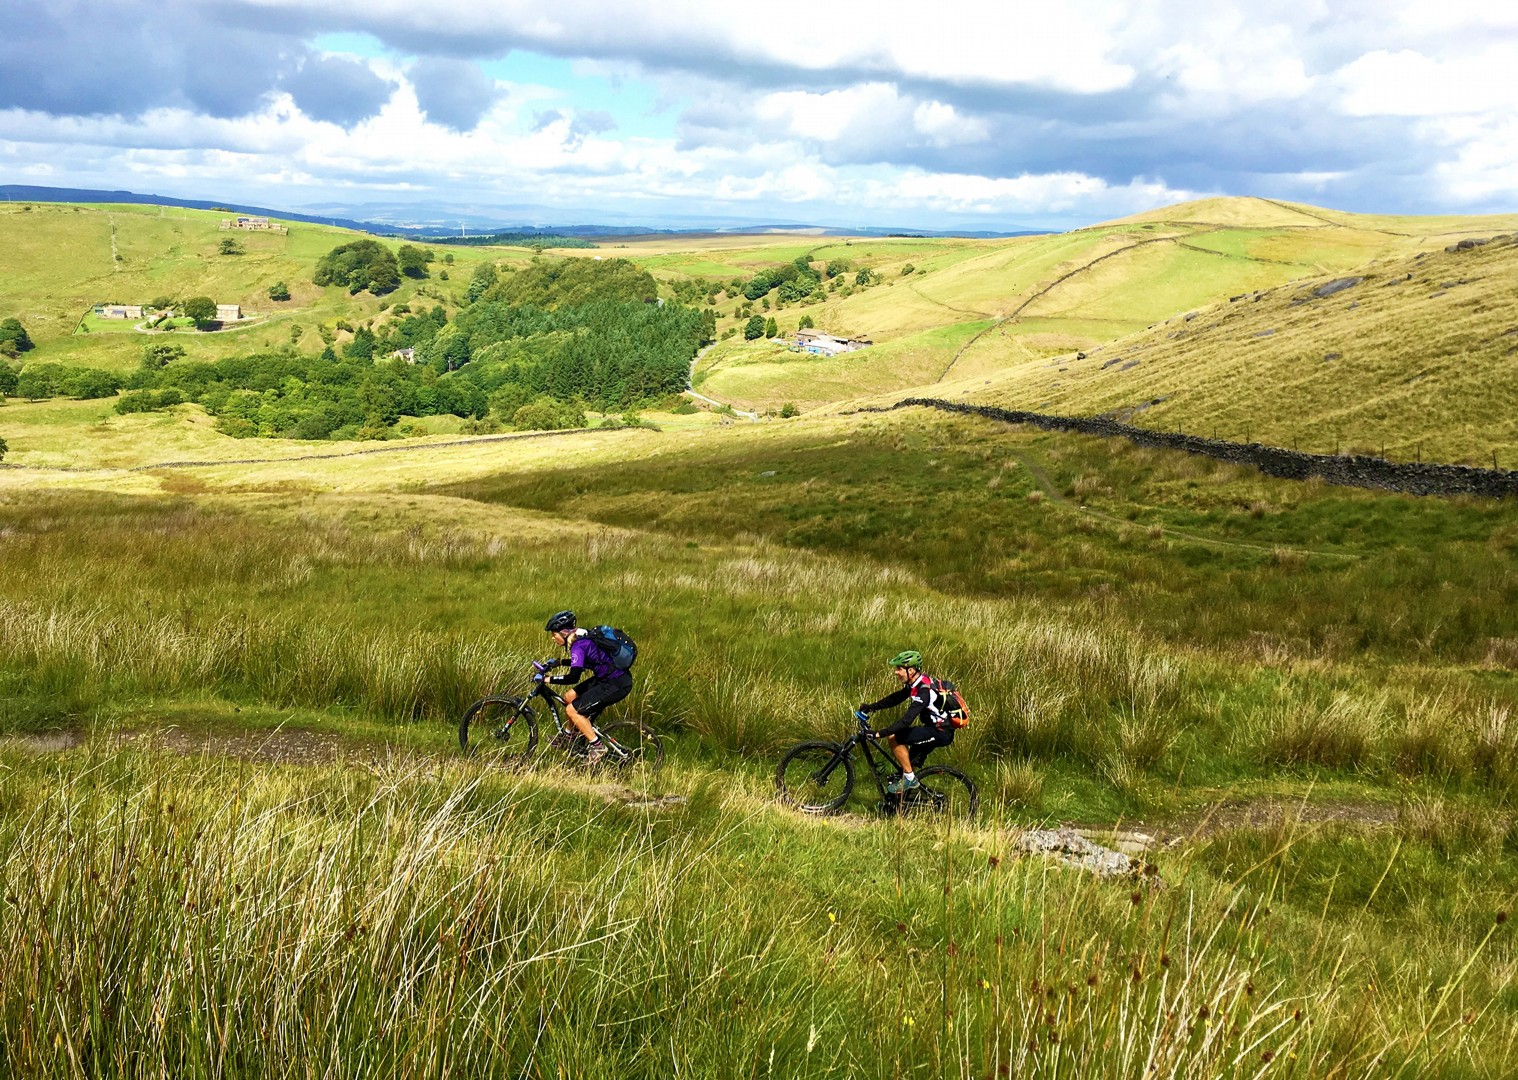 guided-mountain-bike-weekend-uk-pennine-bridleway.JPG - UK - Pennine Bridleway - Guided Mountain Bike Weekend - Mountain Biking